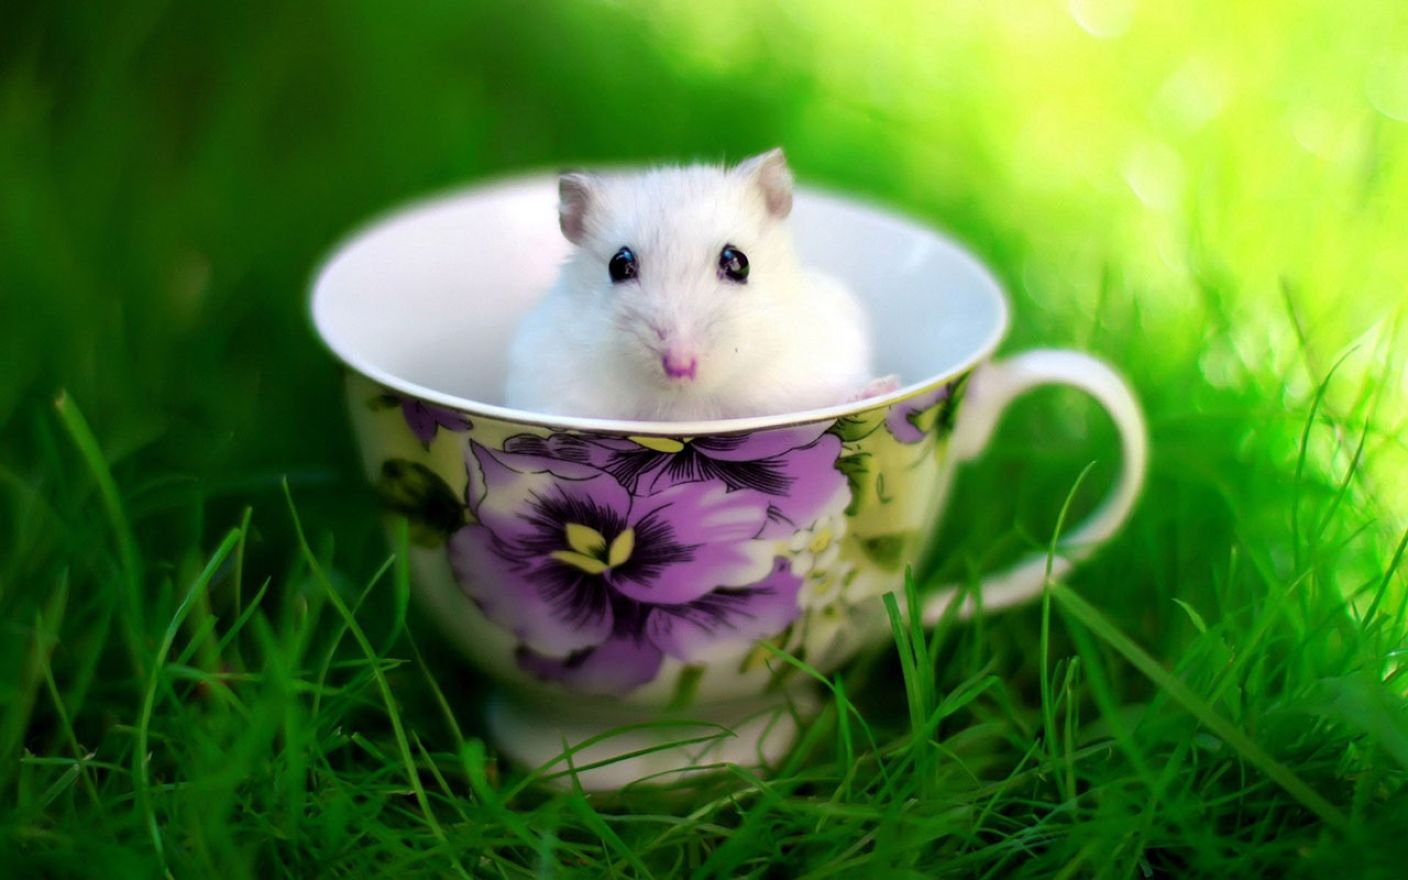 Download free HD Hamster Desktop 1280×800 Wallpaper, image